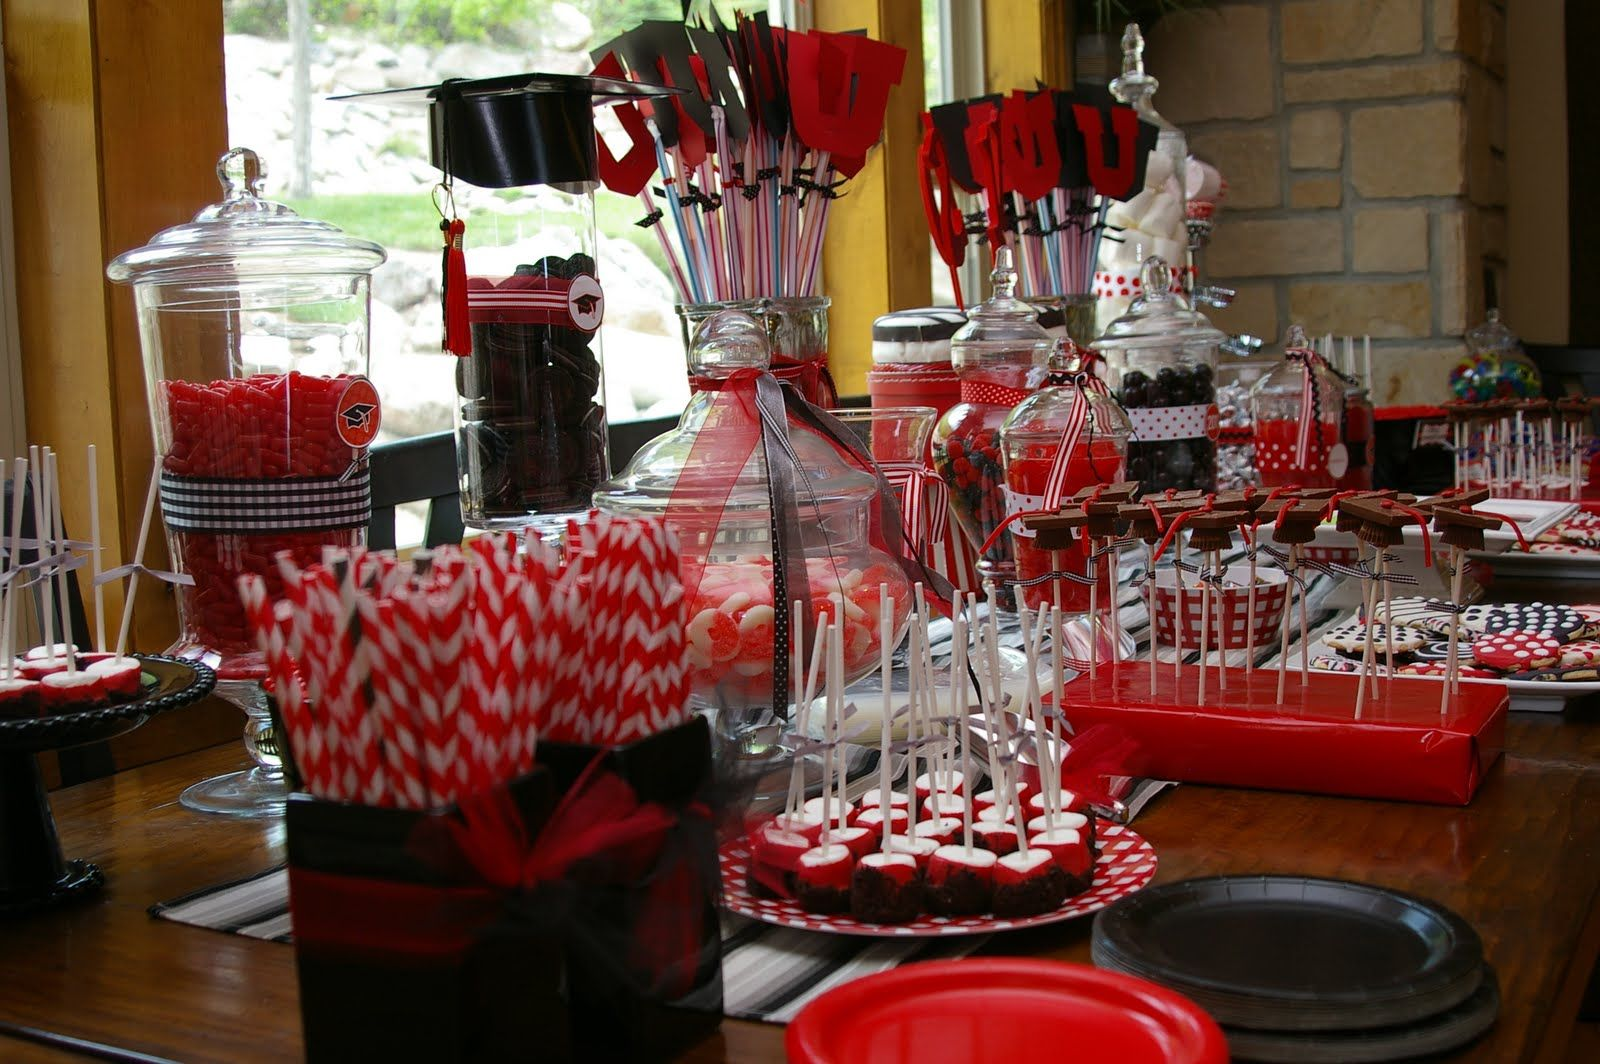 Superb High School Christmas Party Ideas Part - 8: High School Graduation Party Ideas U2013 Hosting A School Gathering Is Usually  A Terrific Way To